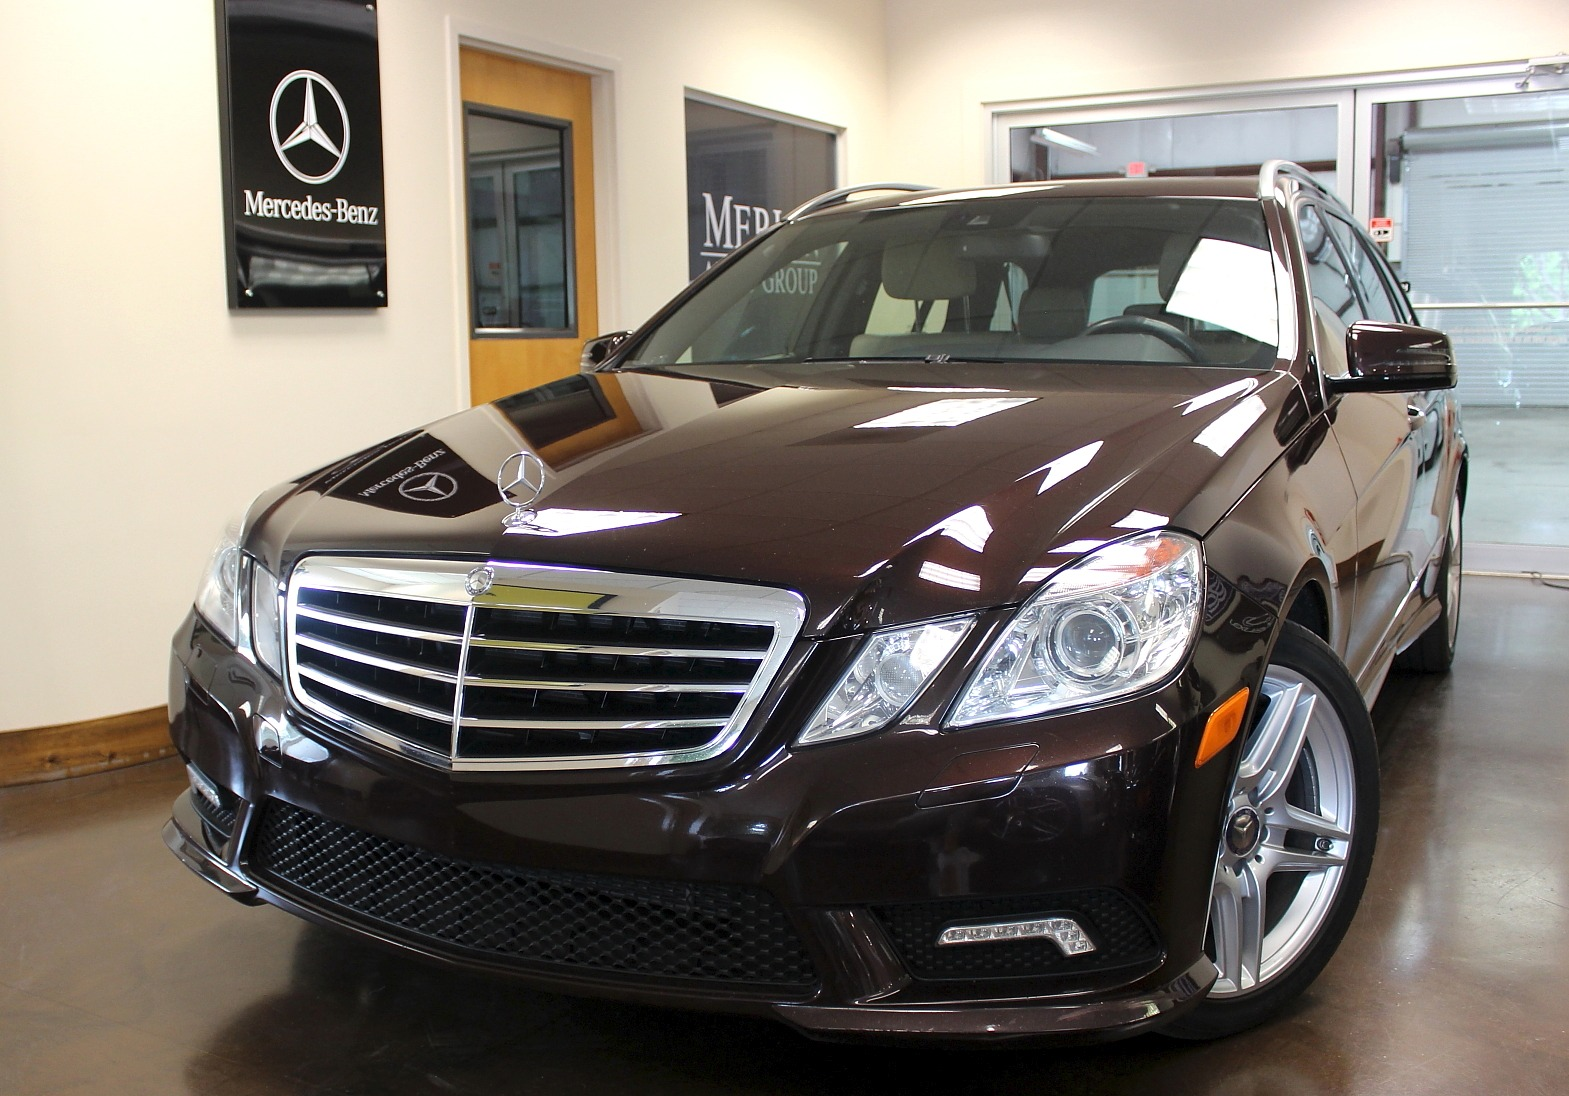 used 2011 mercedes benz e class wagon stock p3526 ultra luxury car from merlin auto group. Black Bedroom Furniture Sets. Home Design Ideas